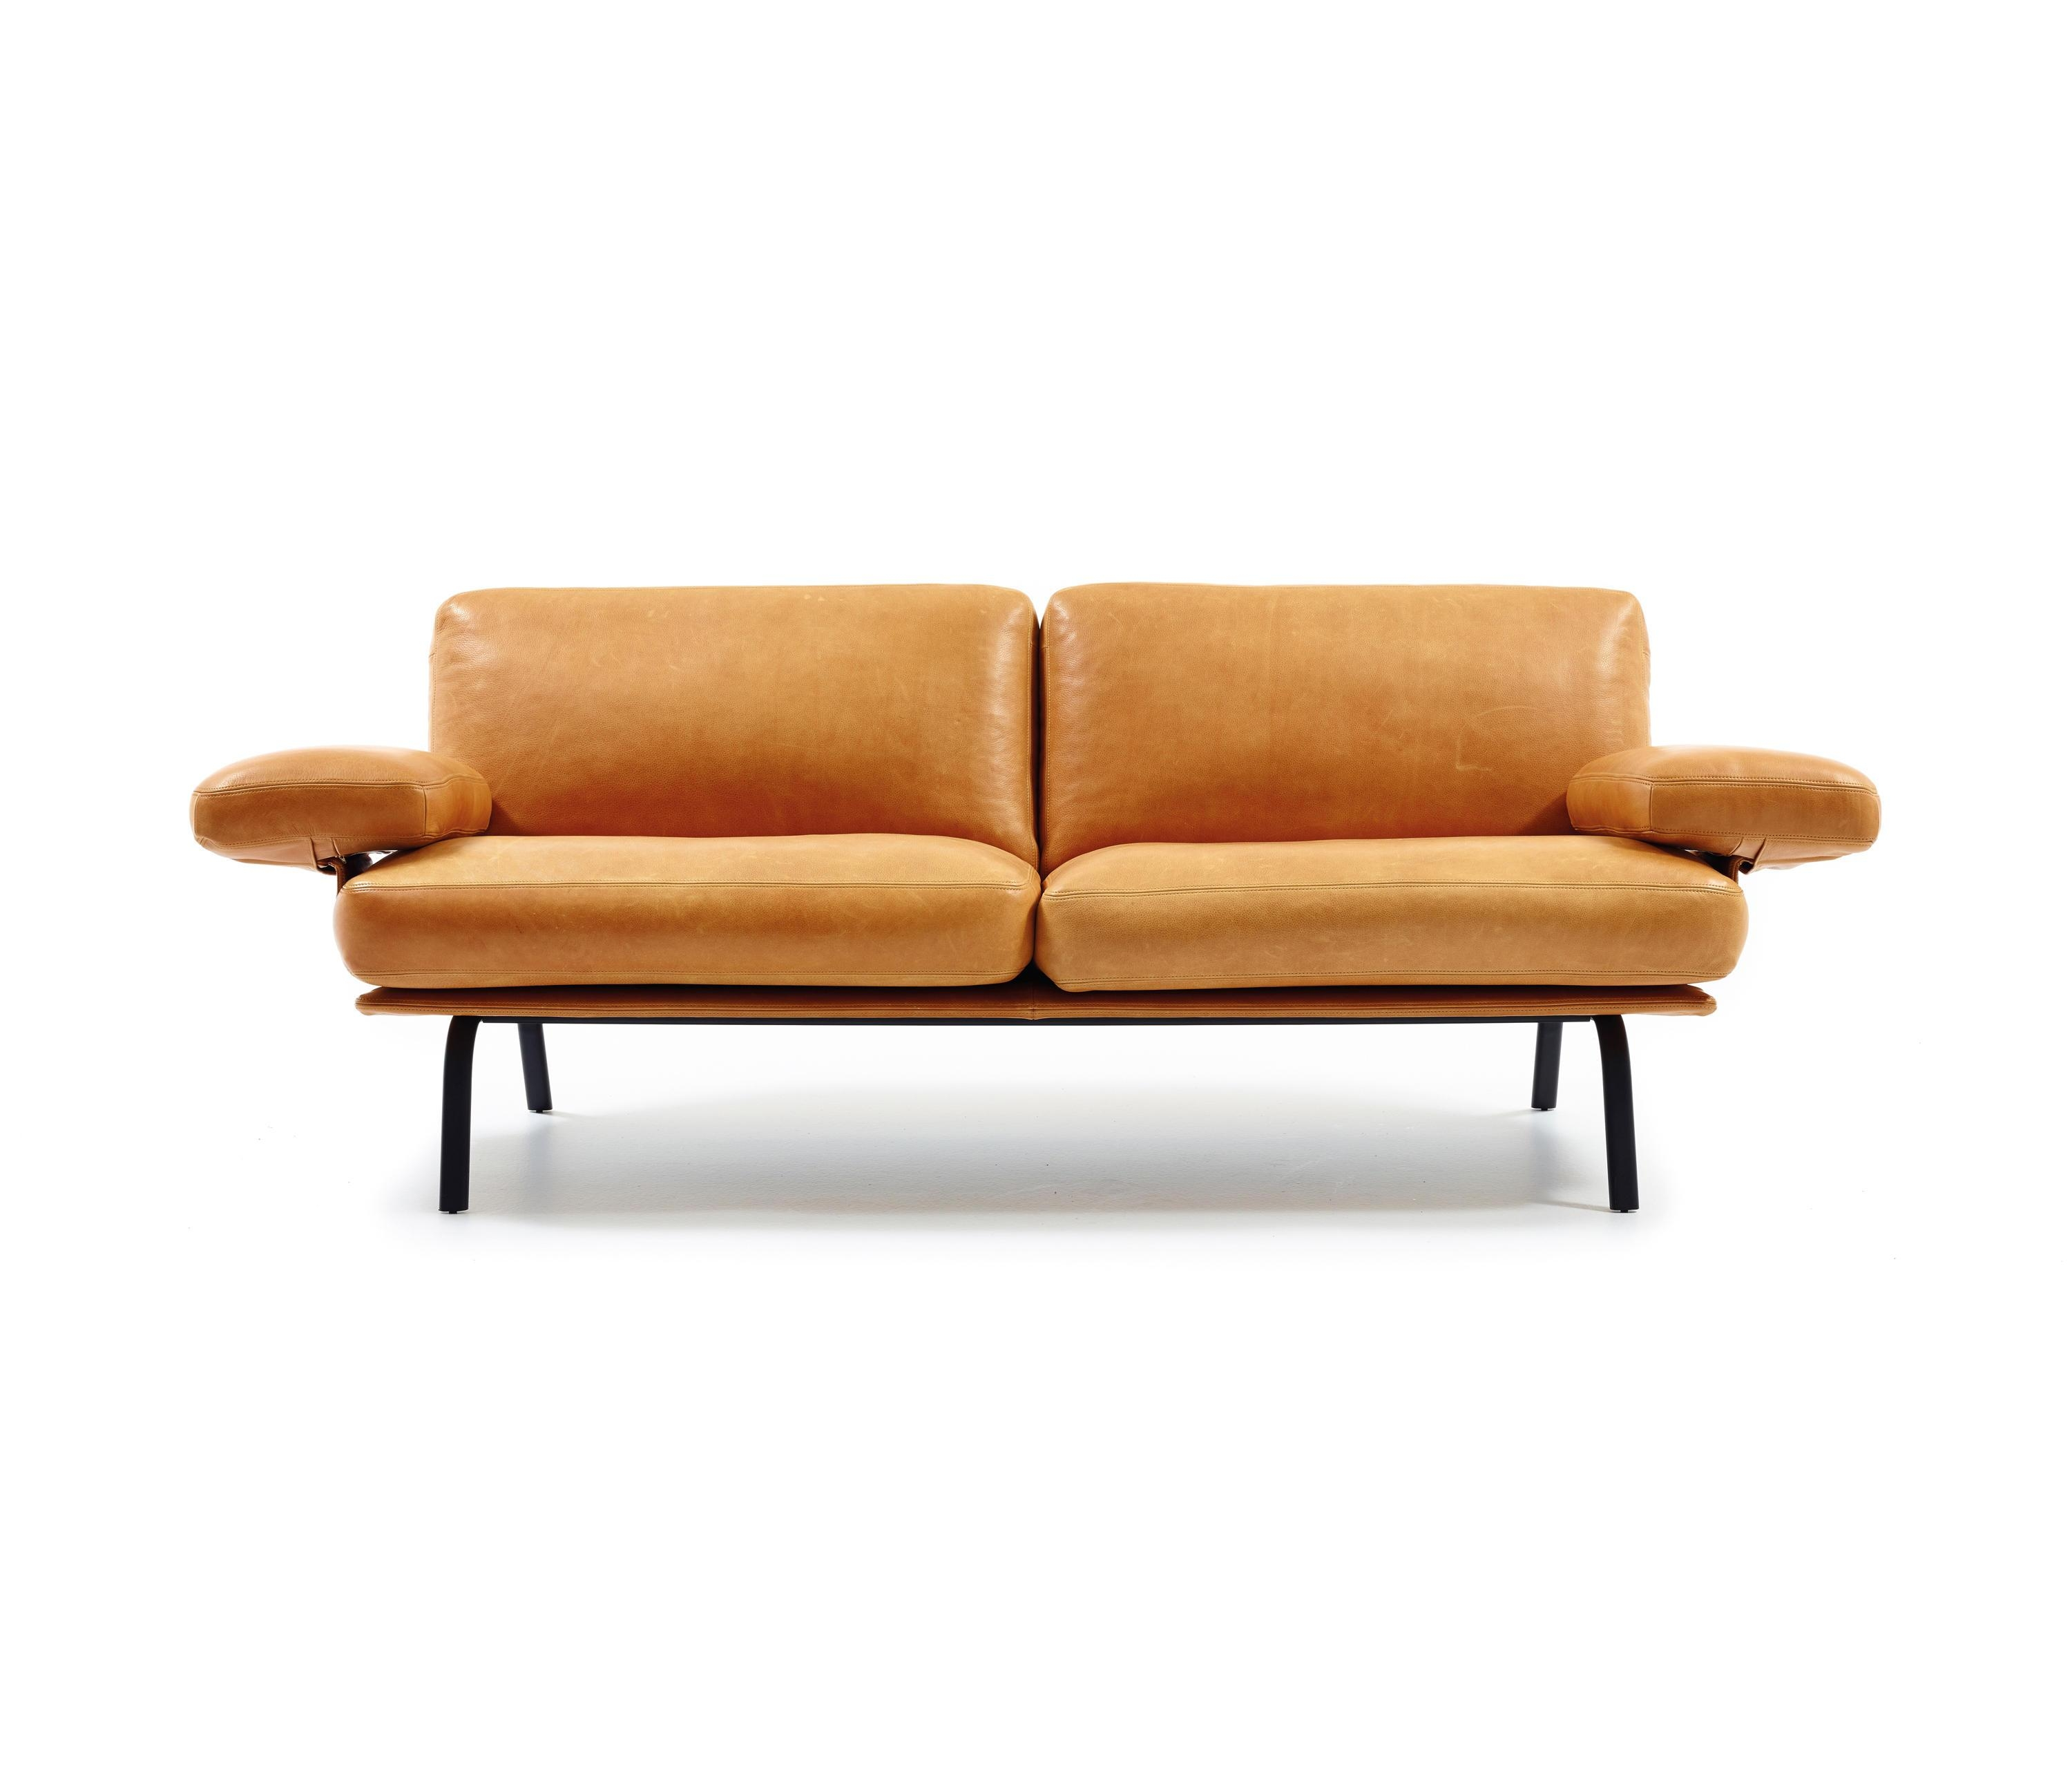 New Port – Lounge Sofas From Durlet | Architonic With Newport Sofas (View 12 of 20)